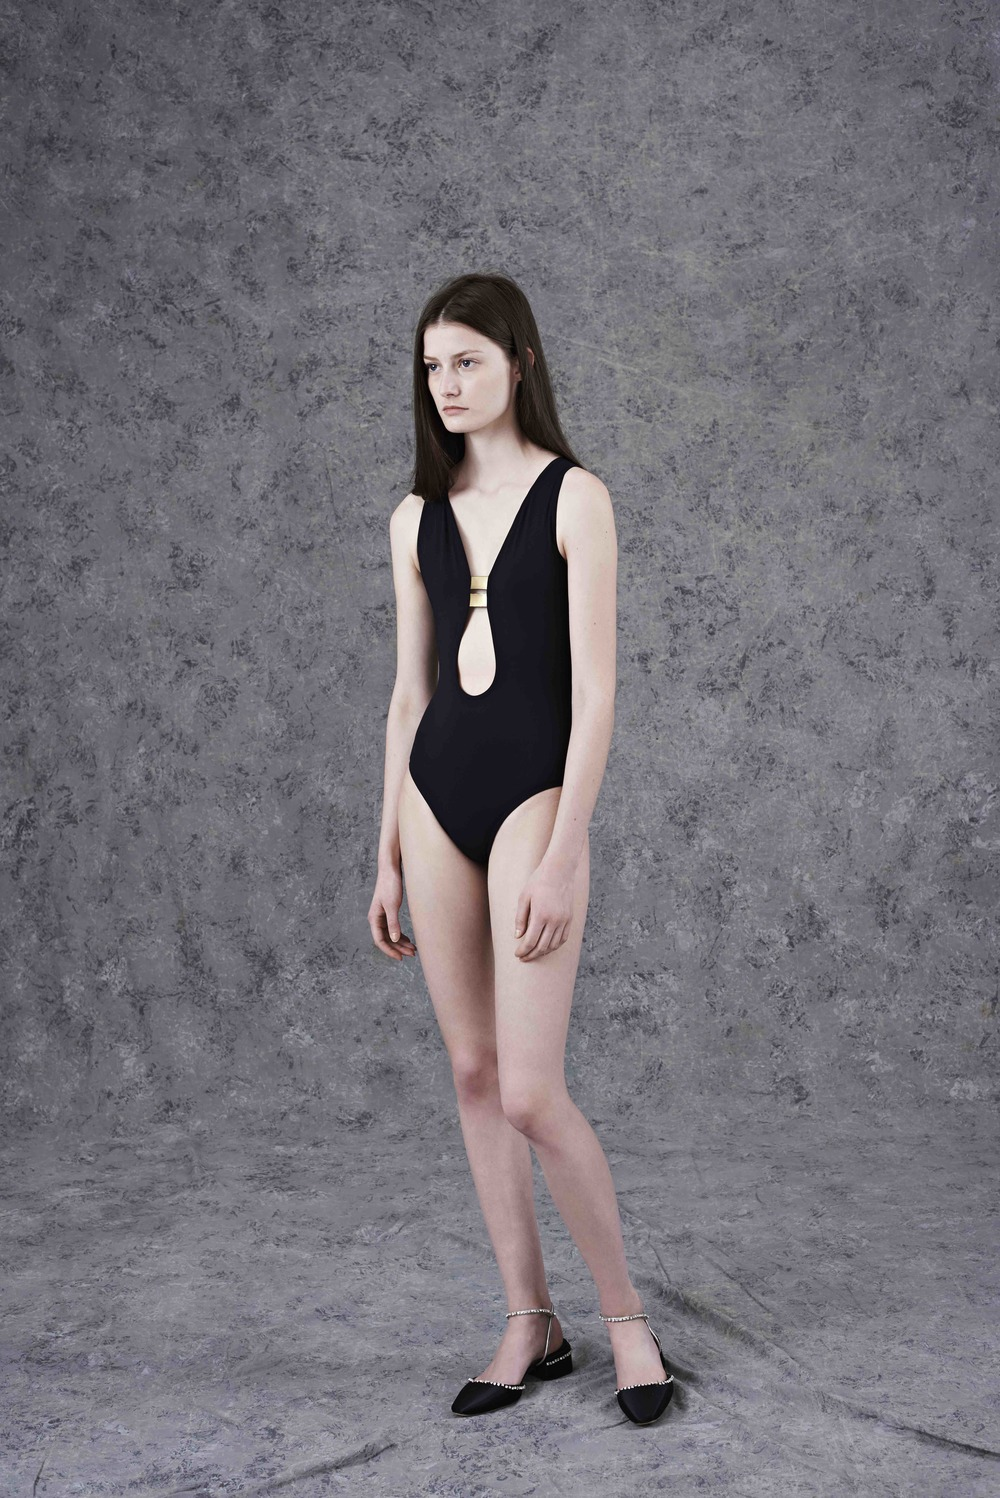 Peau Douce one piece swimsuit with gold band  ERES,  satin slingback pumps with Swarovski crystals  PRADA.